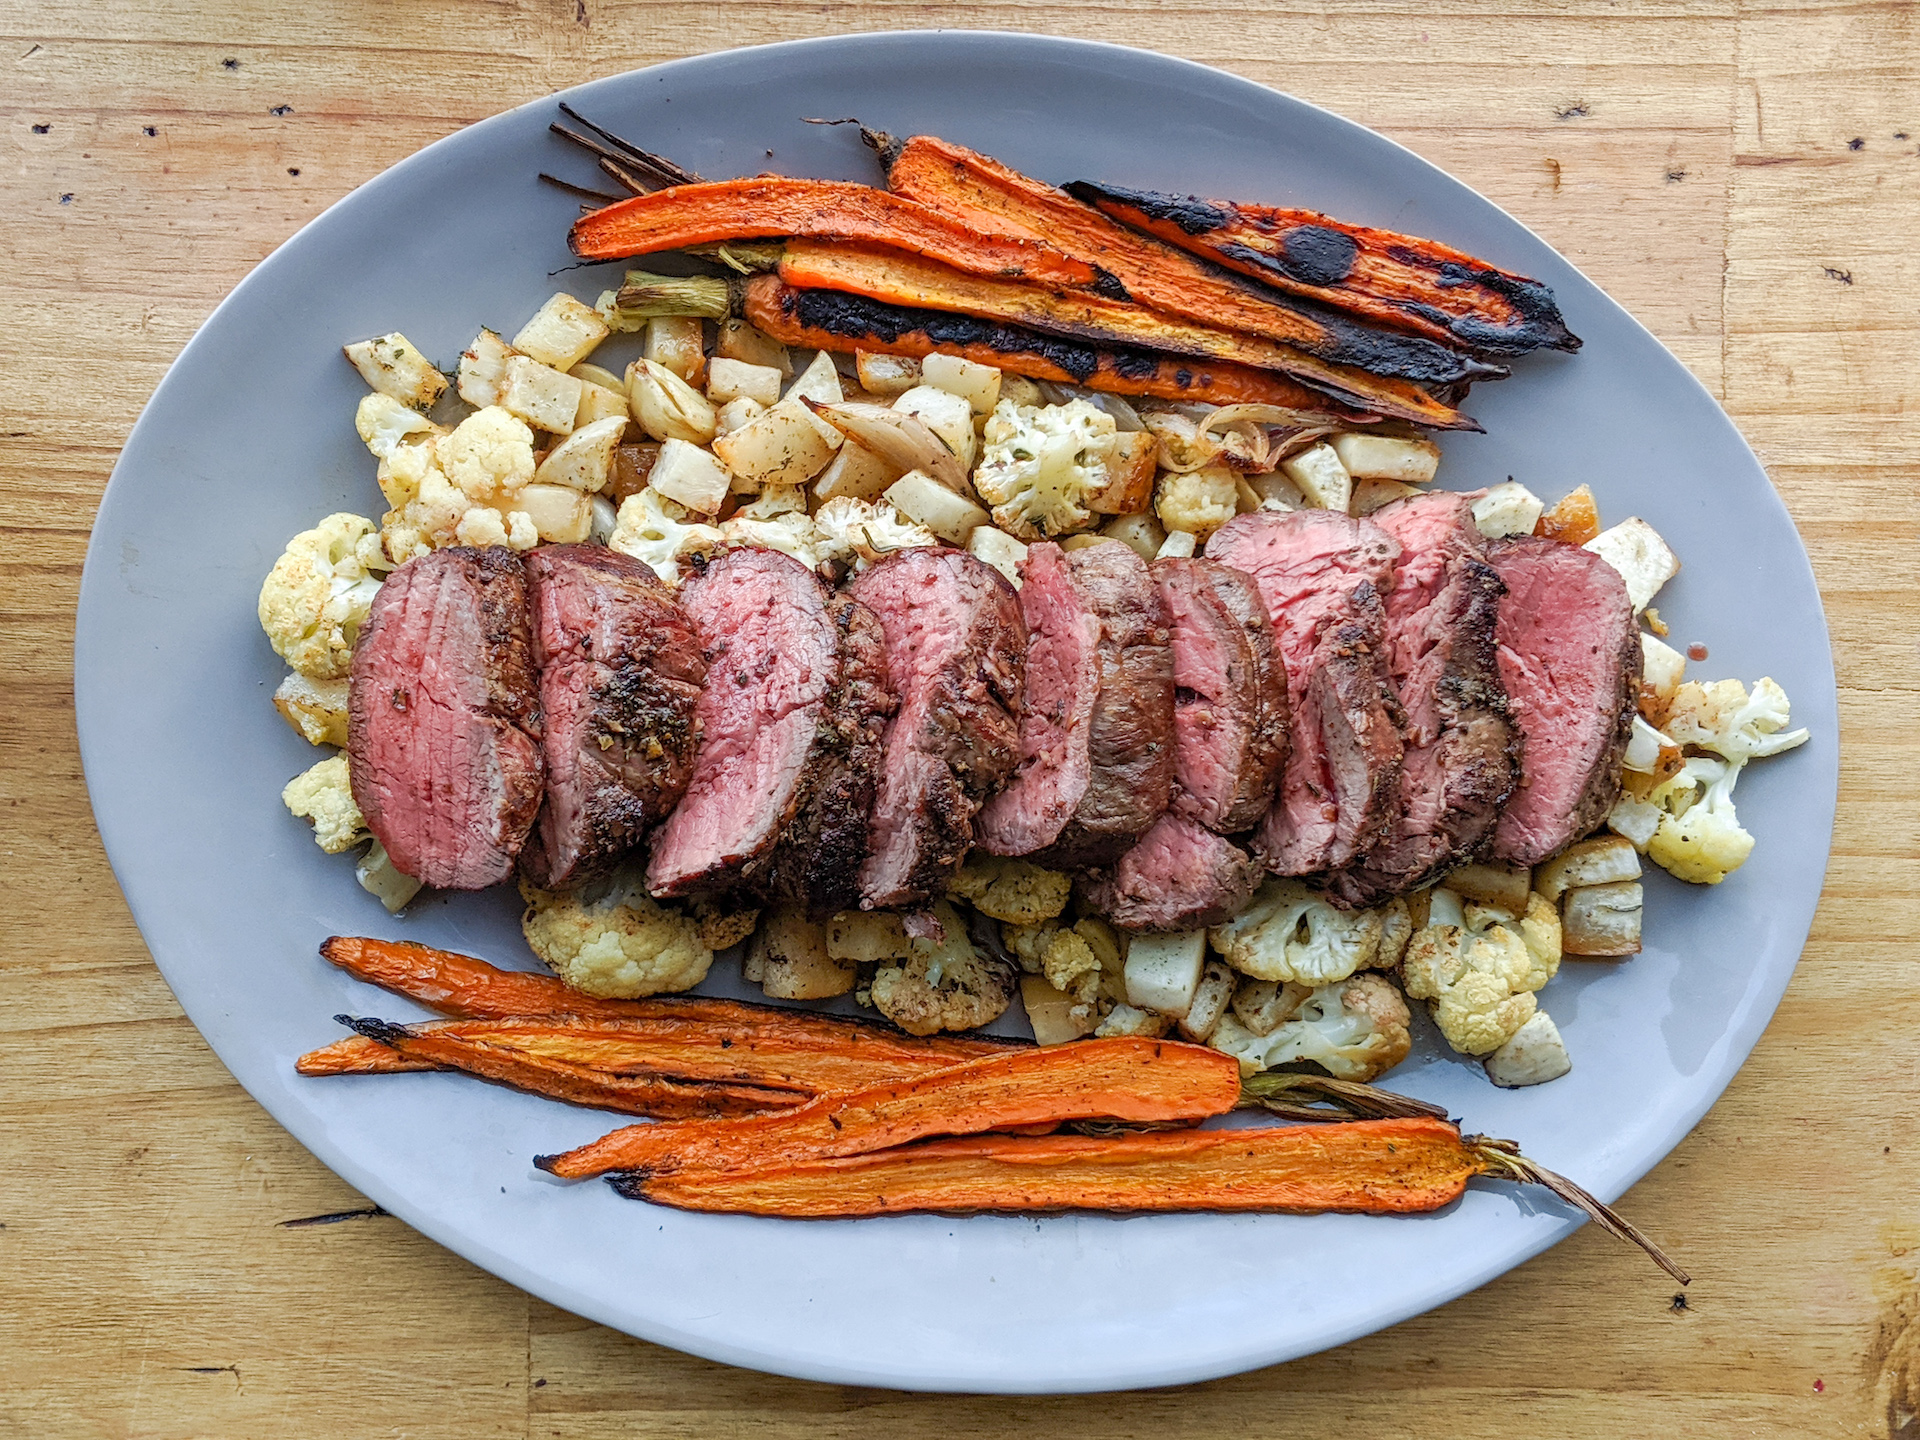 Platter of roast beef tenderloin with carrots, turnips and cauliflower